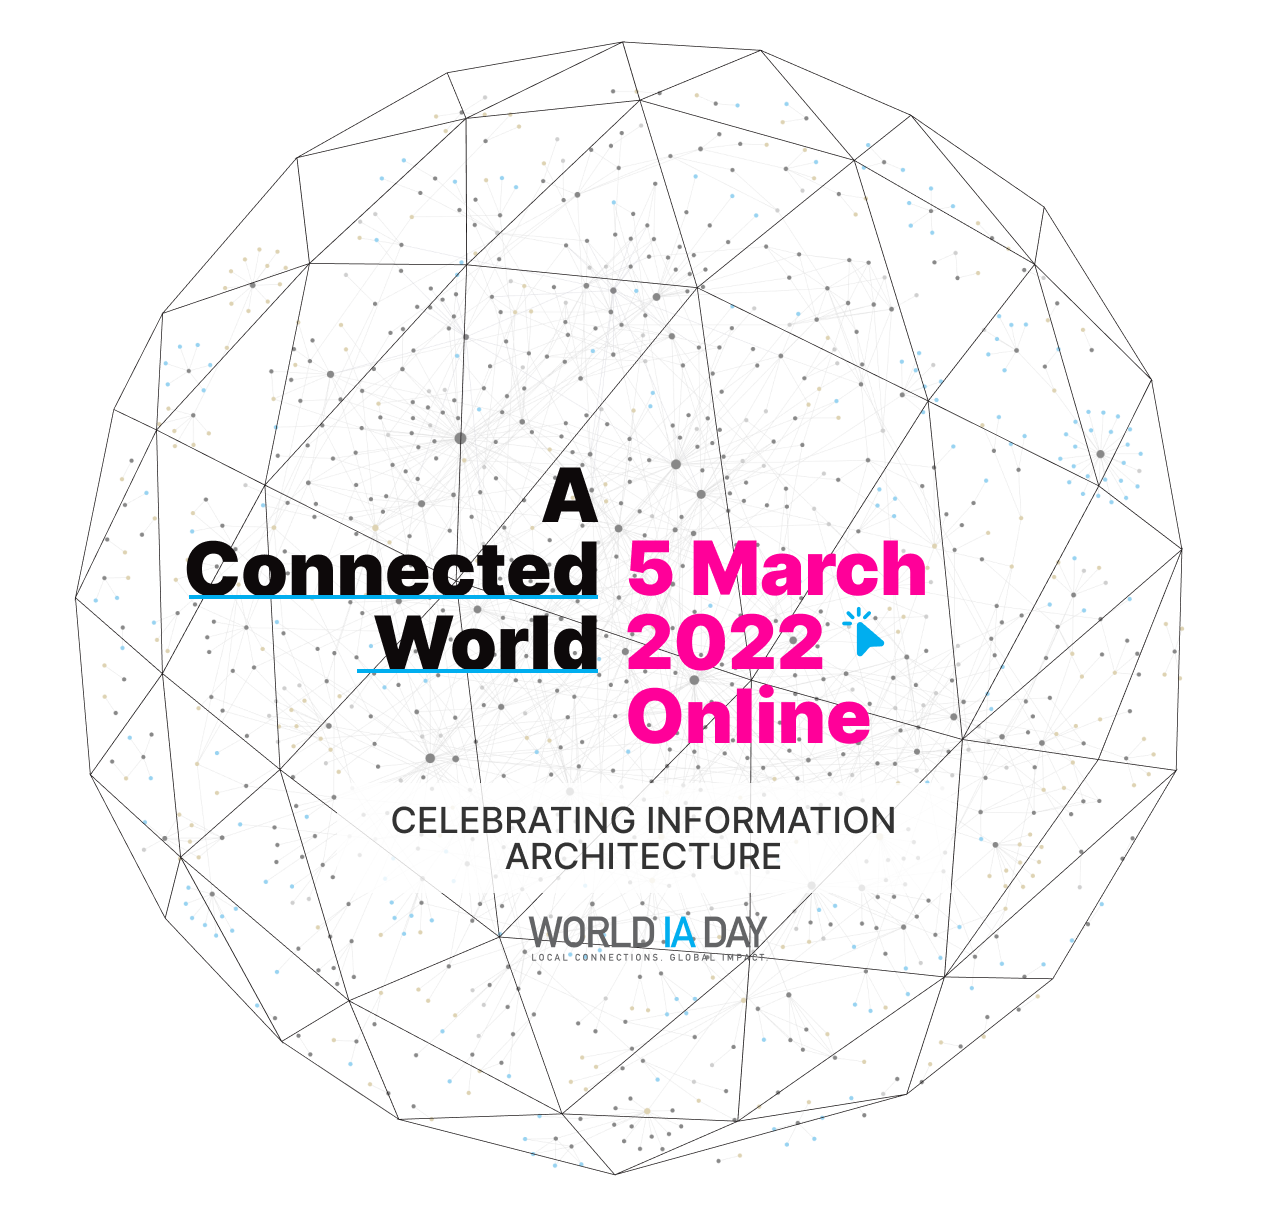 WIAD22 theme image showing A Connected World as the theme text and 5 March 2022 as the event date over an outline of the World IA Day logo